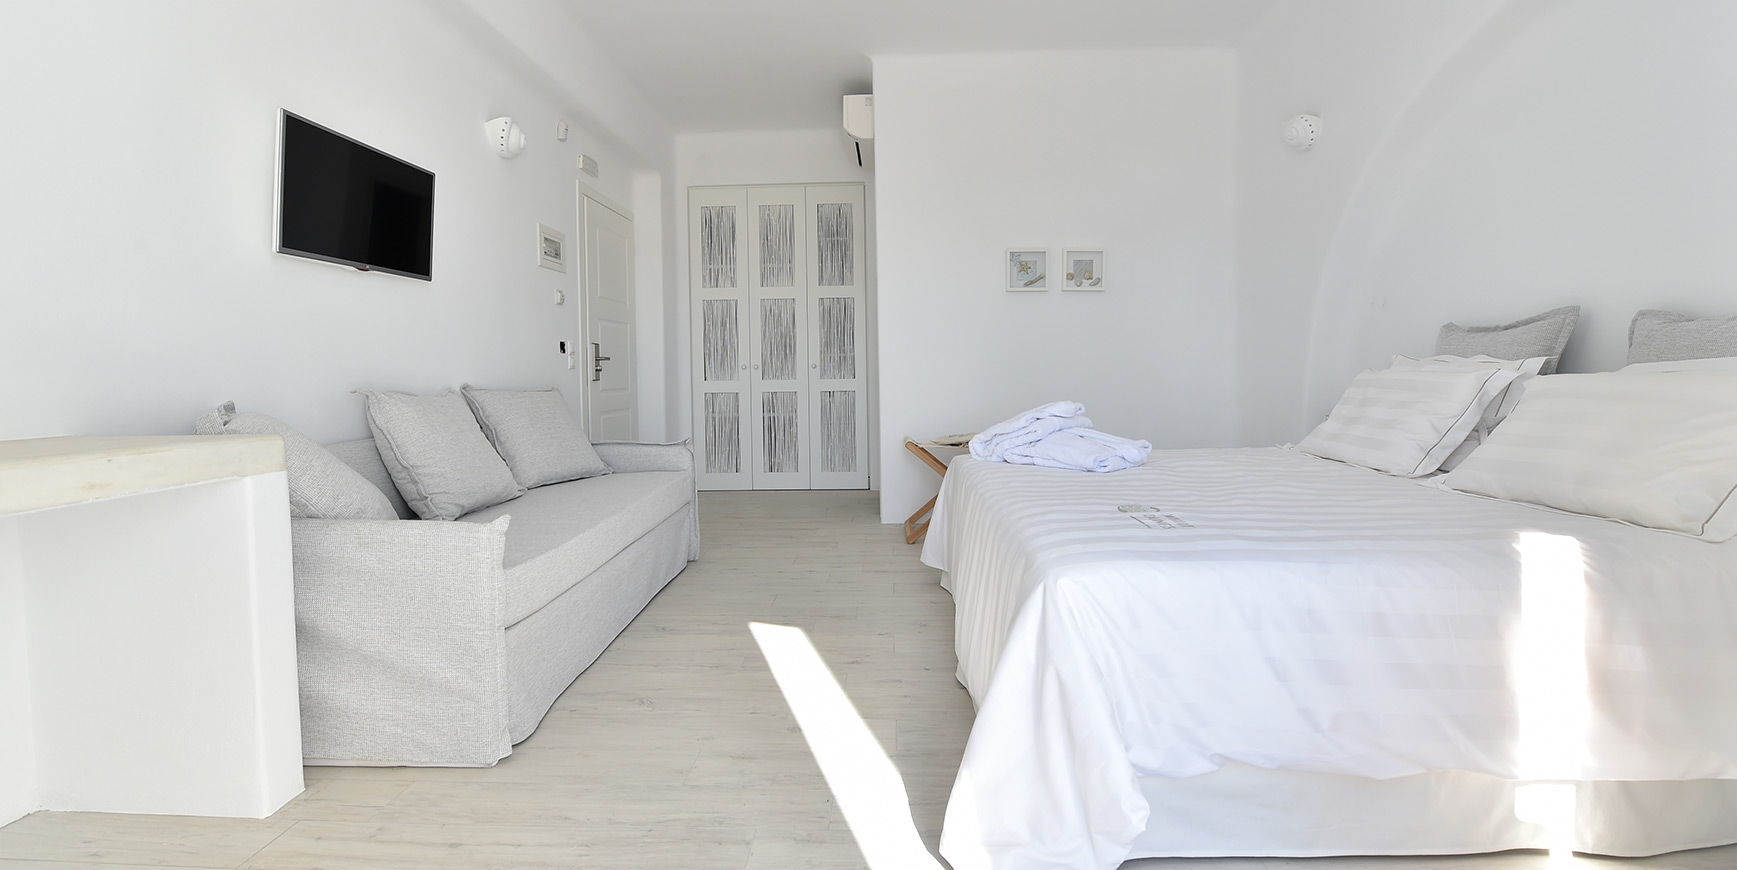 Luxury Room in Paros